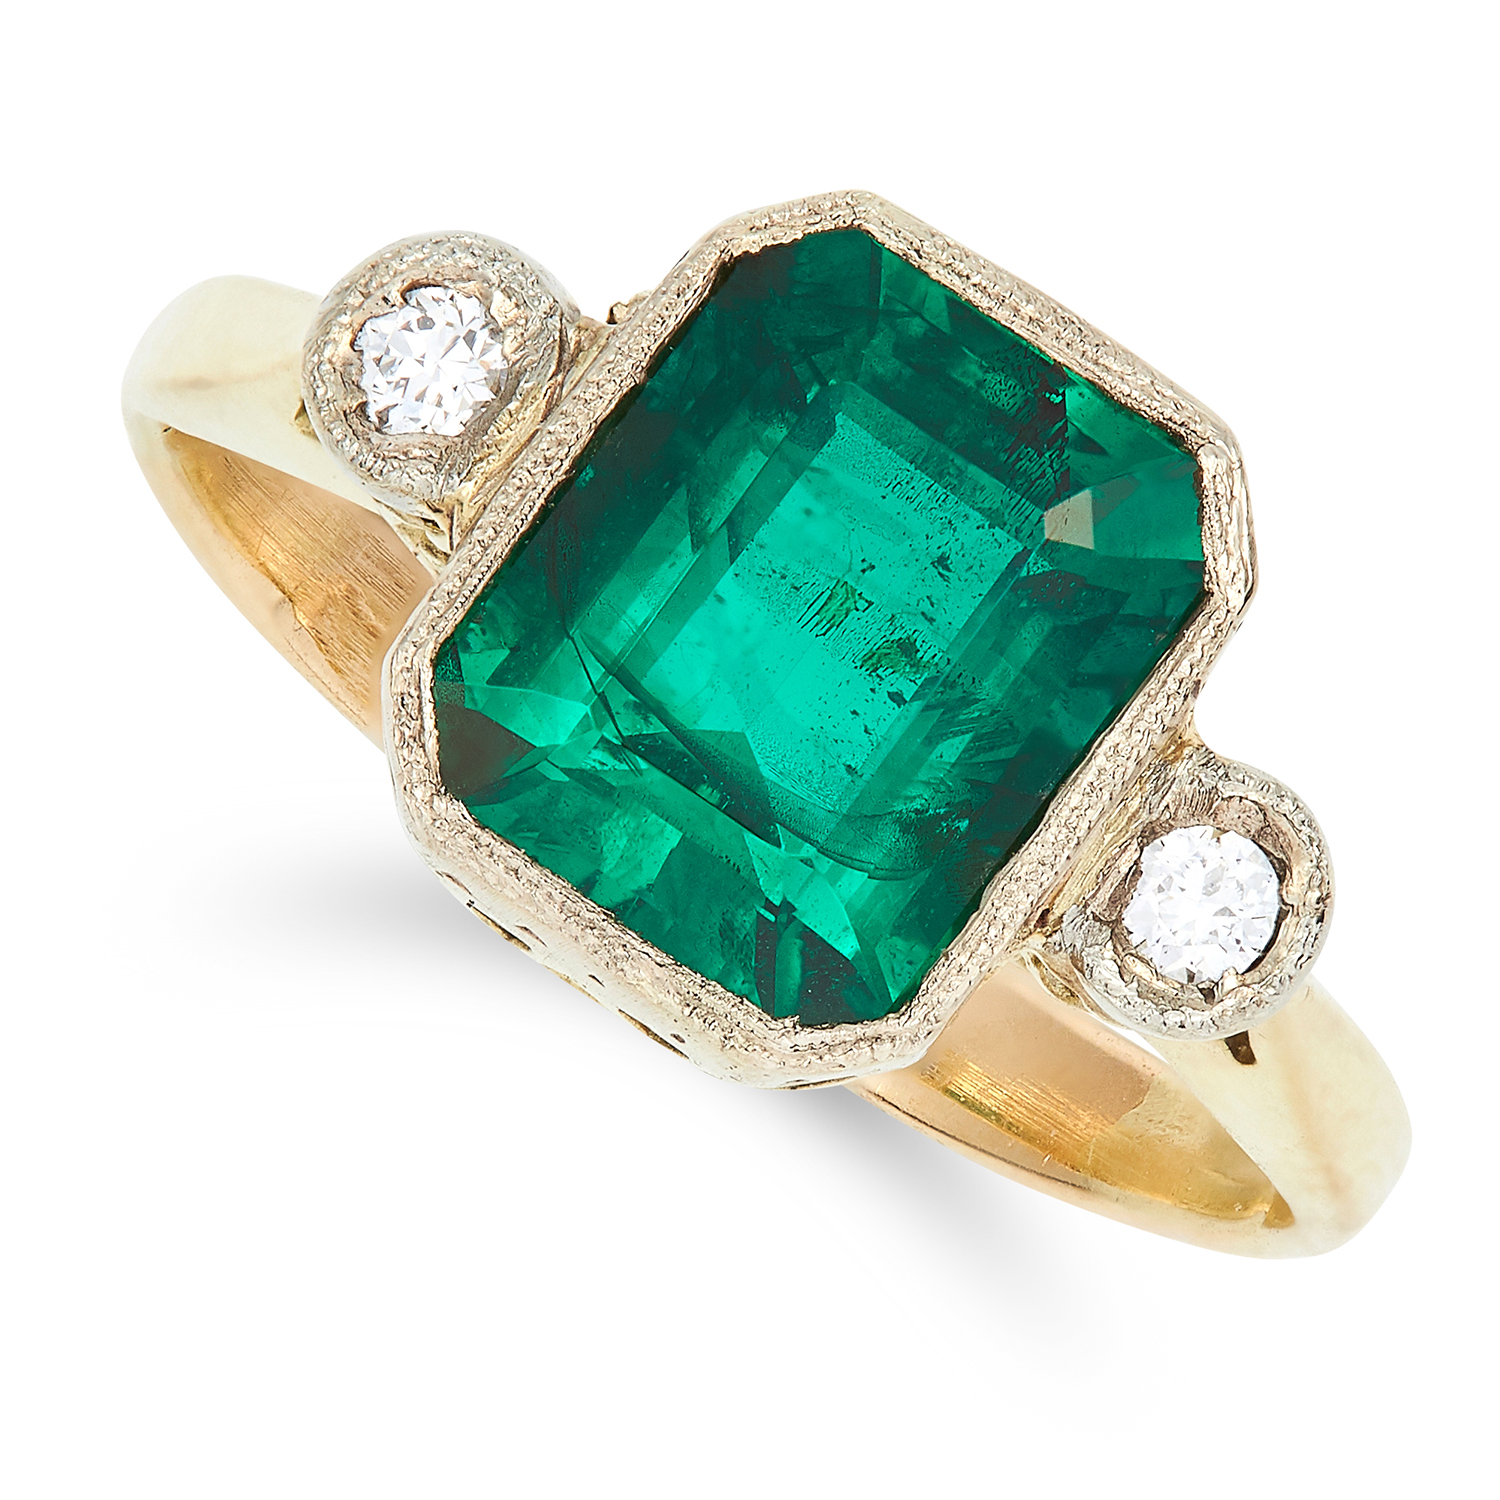 Los 44 - ANTIQUE SYNTHETIC EMERALD AND DIAMOND RING set with an emerald cut synthetic emerald and round cut